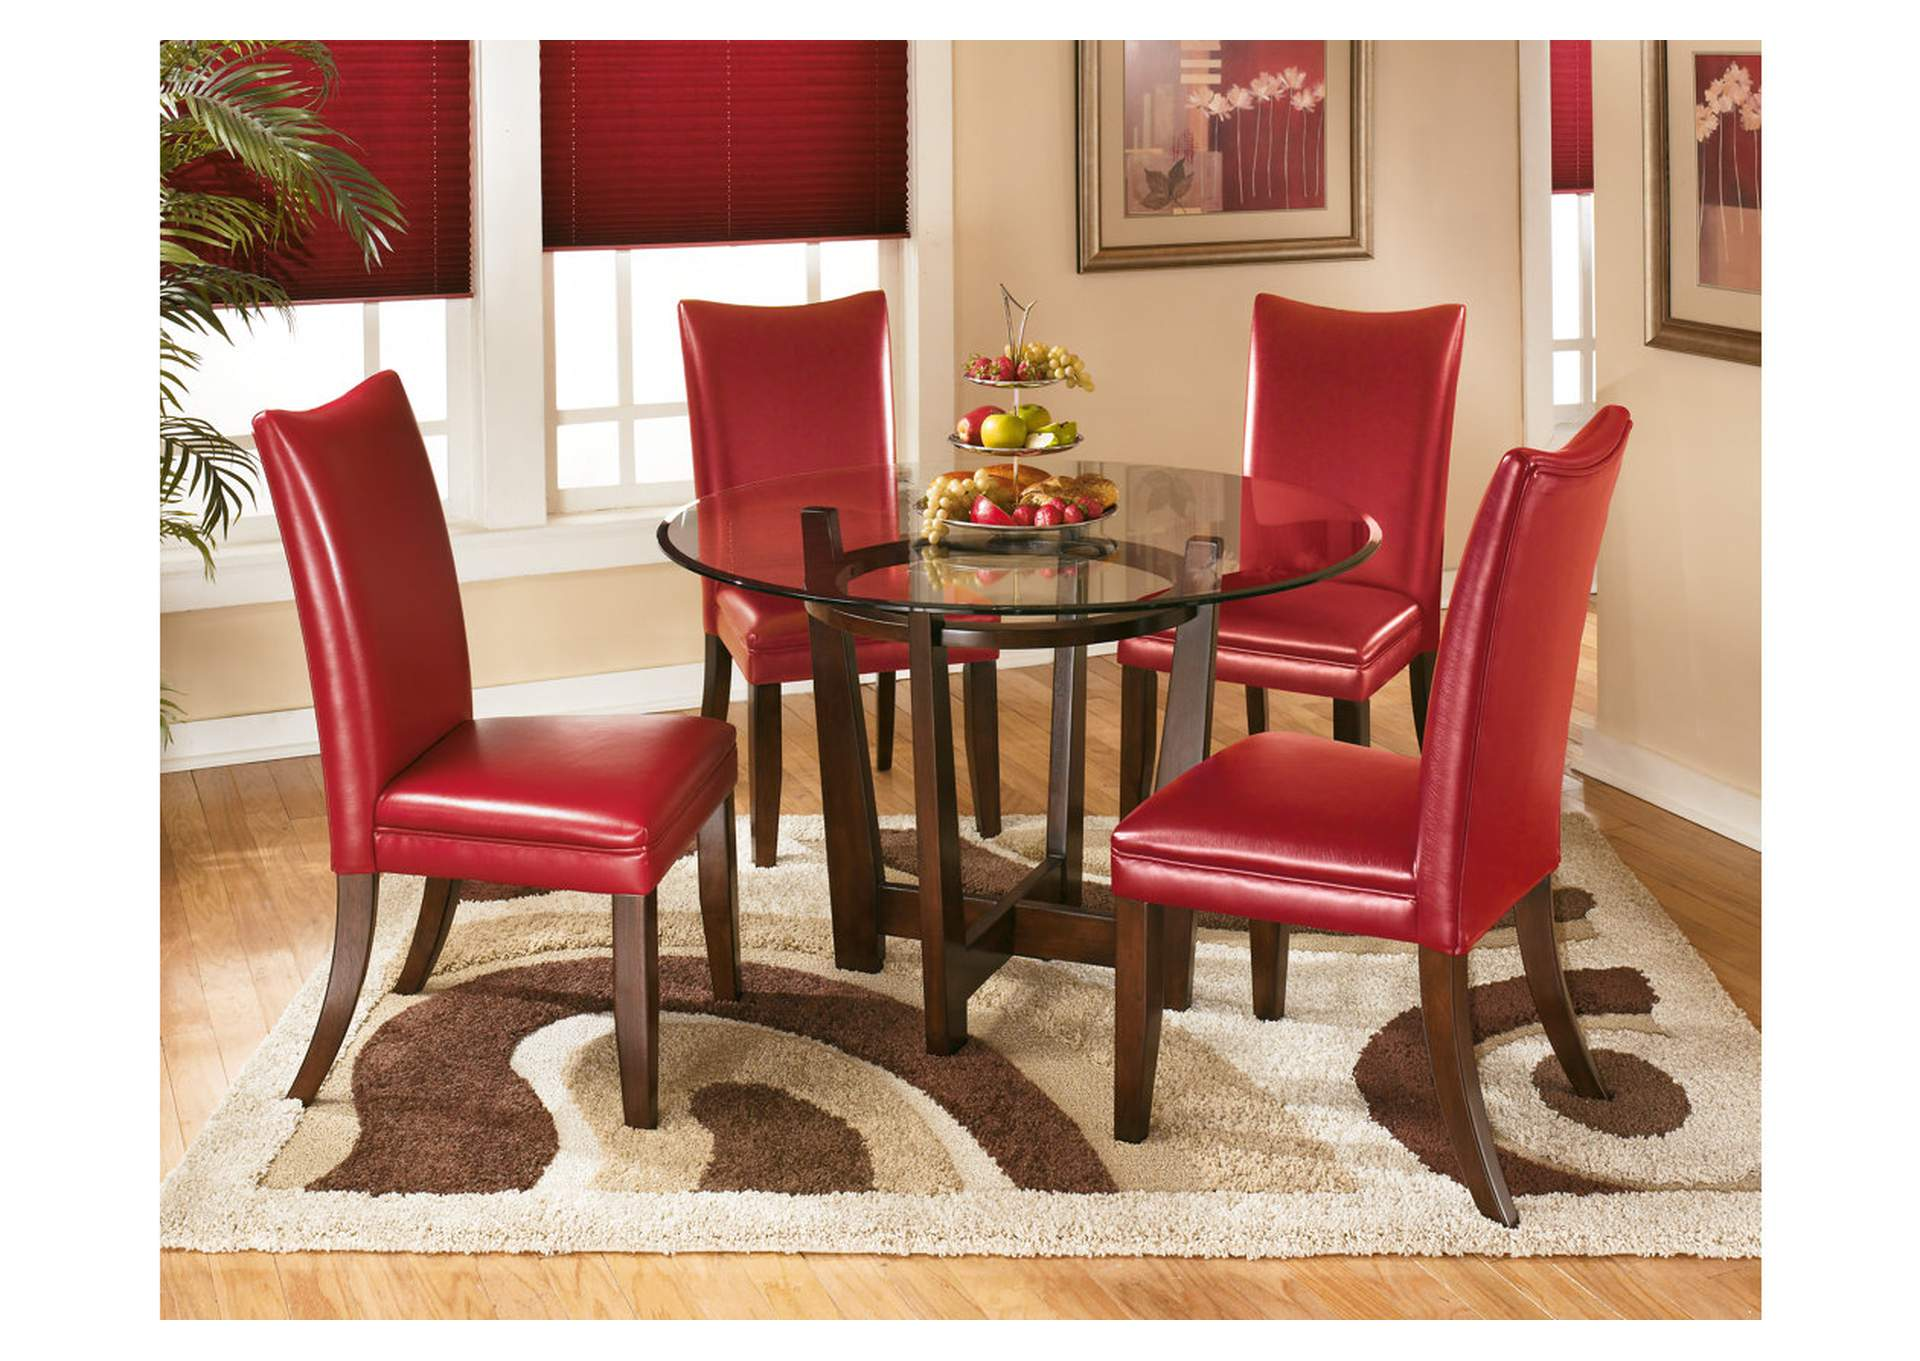 flooring and furniture charell round dining table w 4 red side chairs